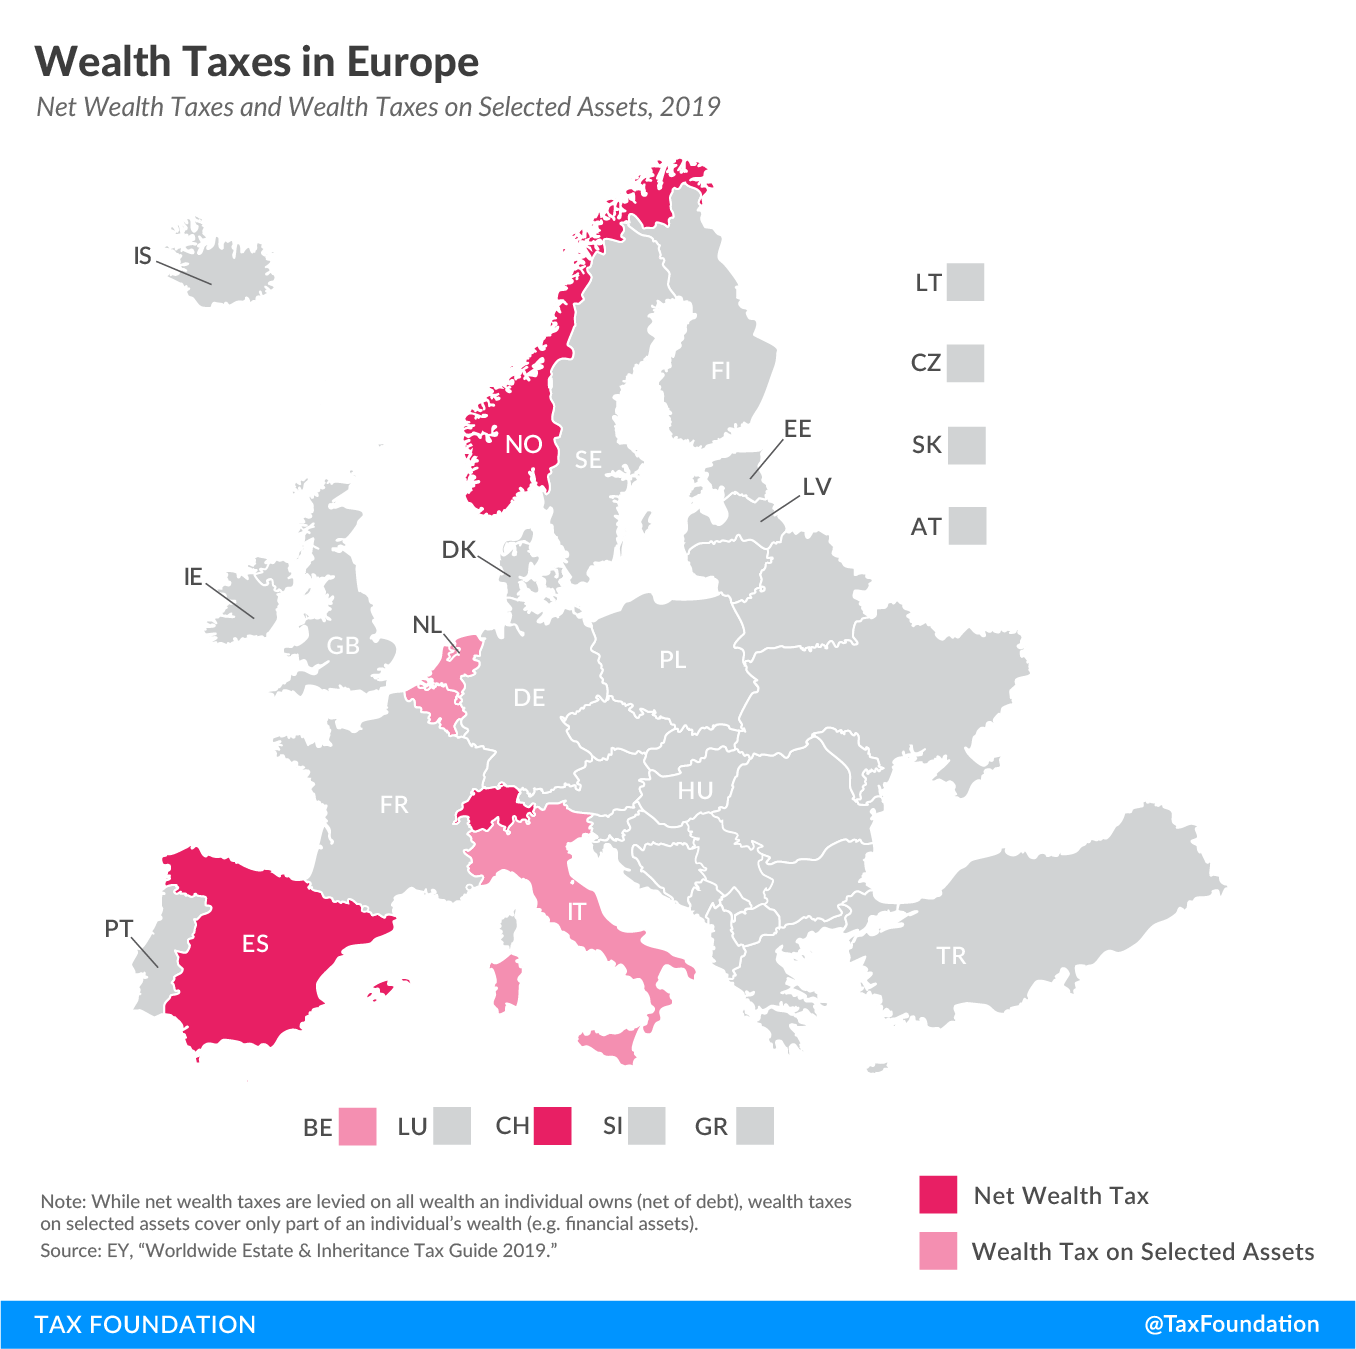 Wealth taxes in Europe include a Norway wealth tax, Spain wealth tax, Switzerland wealth tax, Belgium wealth tax, Italy wealth tax, and Netherlands wealth tax